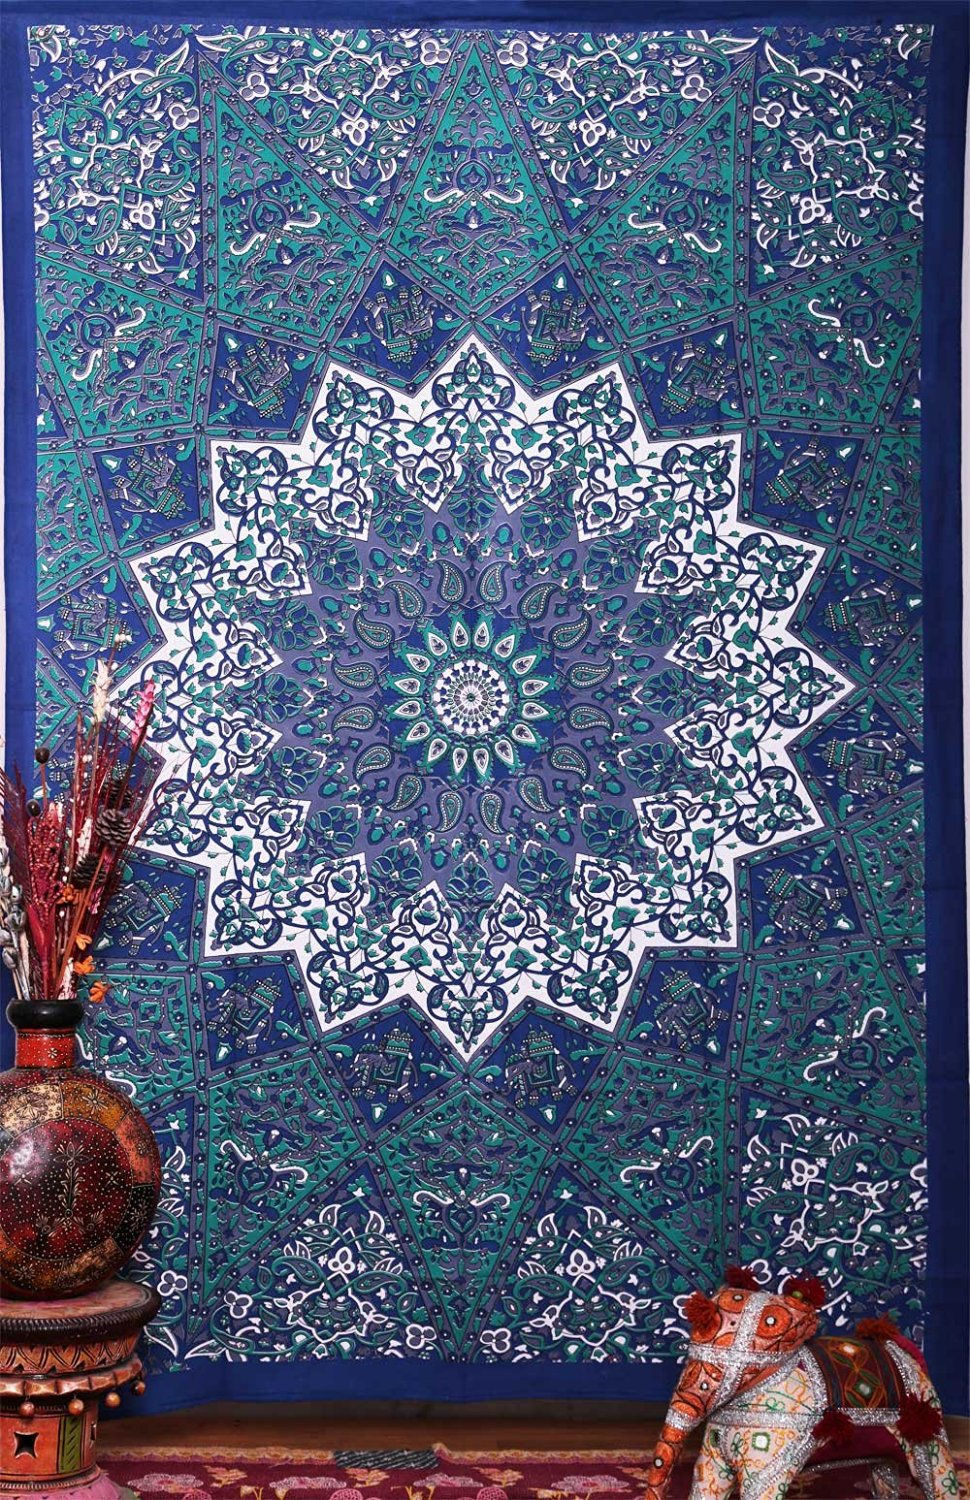 Indian table decorations - 210x148cm Indian Hippie Home Decorative Tapestries Boho Beach Yoga Mat Bedspread Table Cloth Wall Hanging Mandala